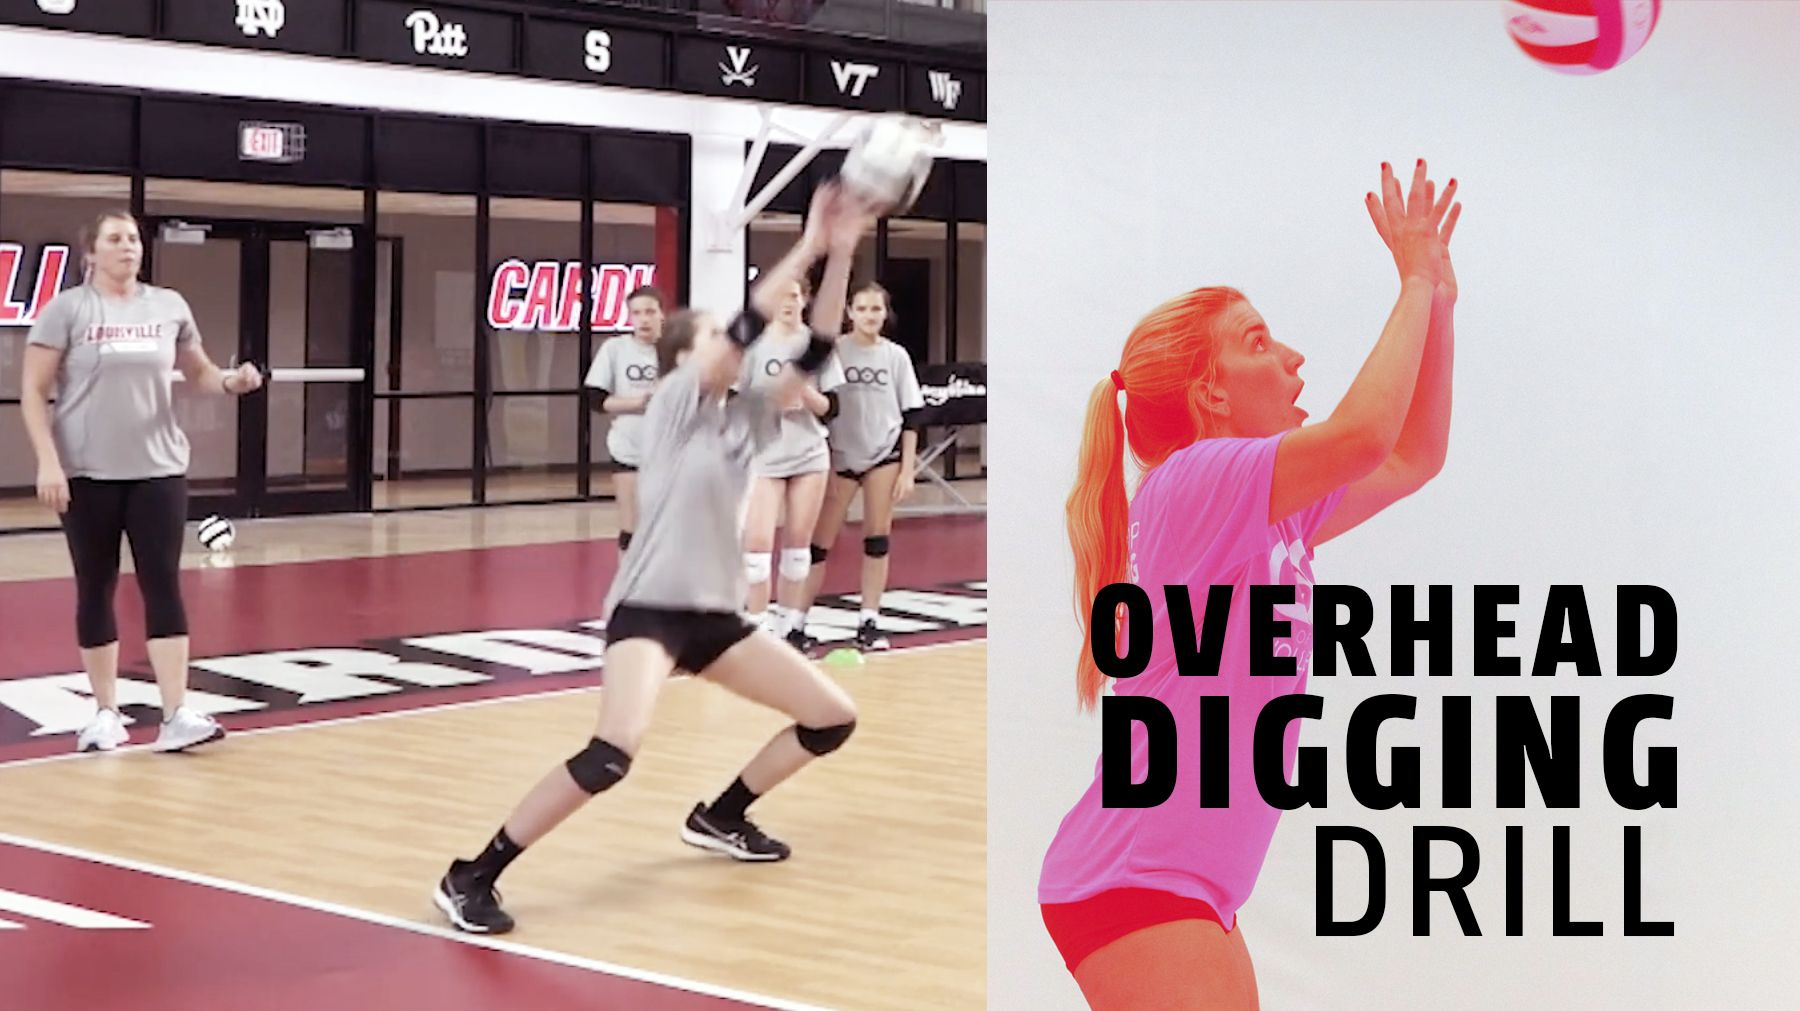 Overhead Digging Drill Hands Together Cup The Art Of Coaching Volleyball Volleyball Skills Coaching Volleyball Volleyball Training